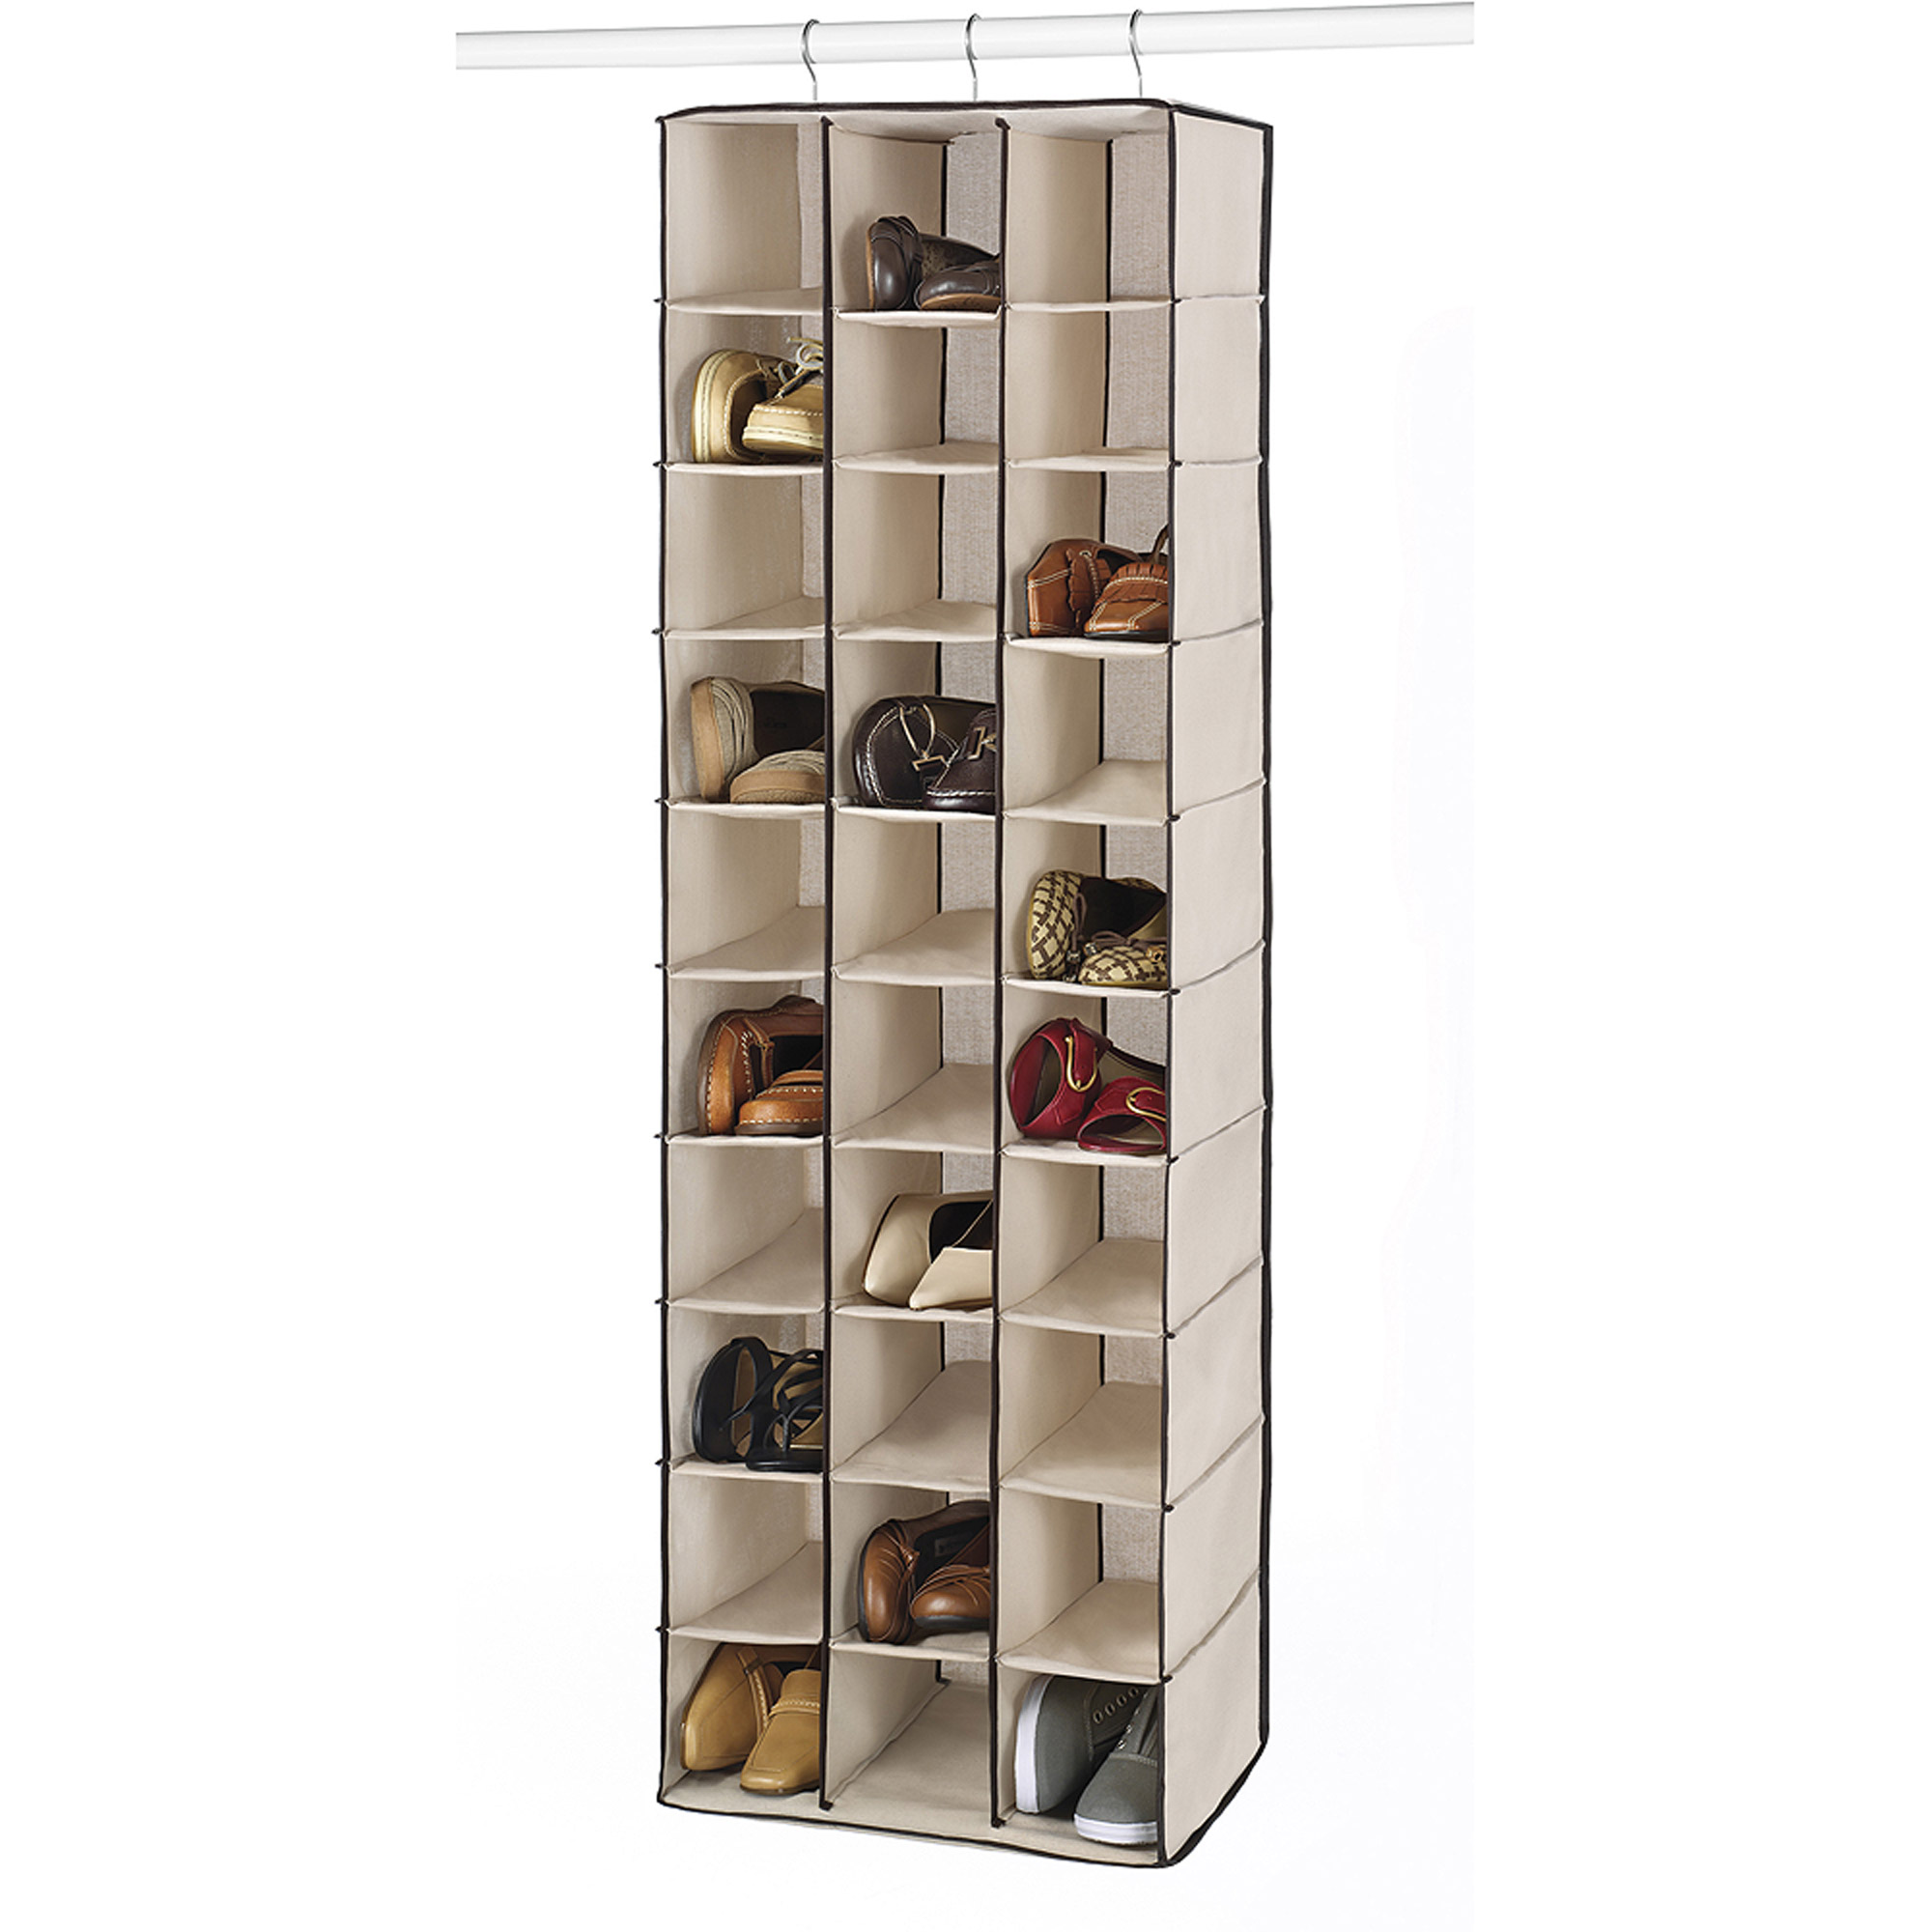 Whitmor 30-Section Hanging Shoe Shelves, Tan/Espresso